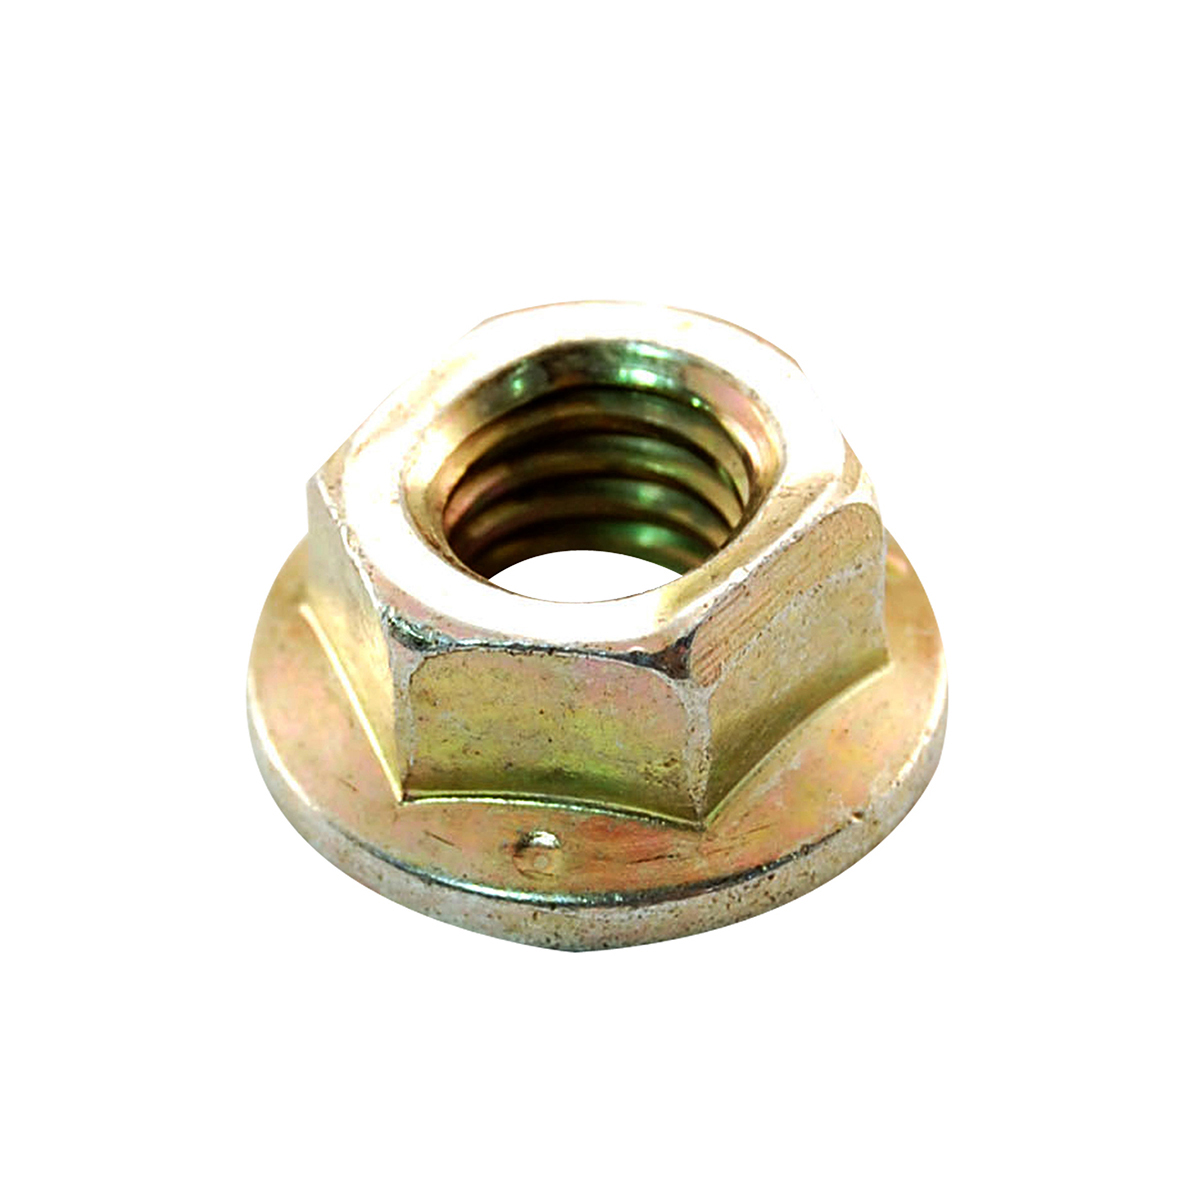 Hex Lock Nut 912-0431